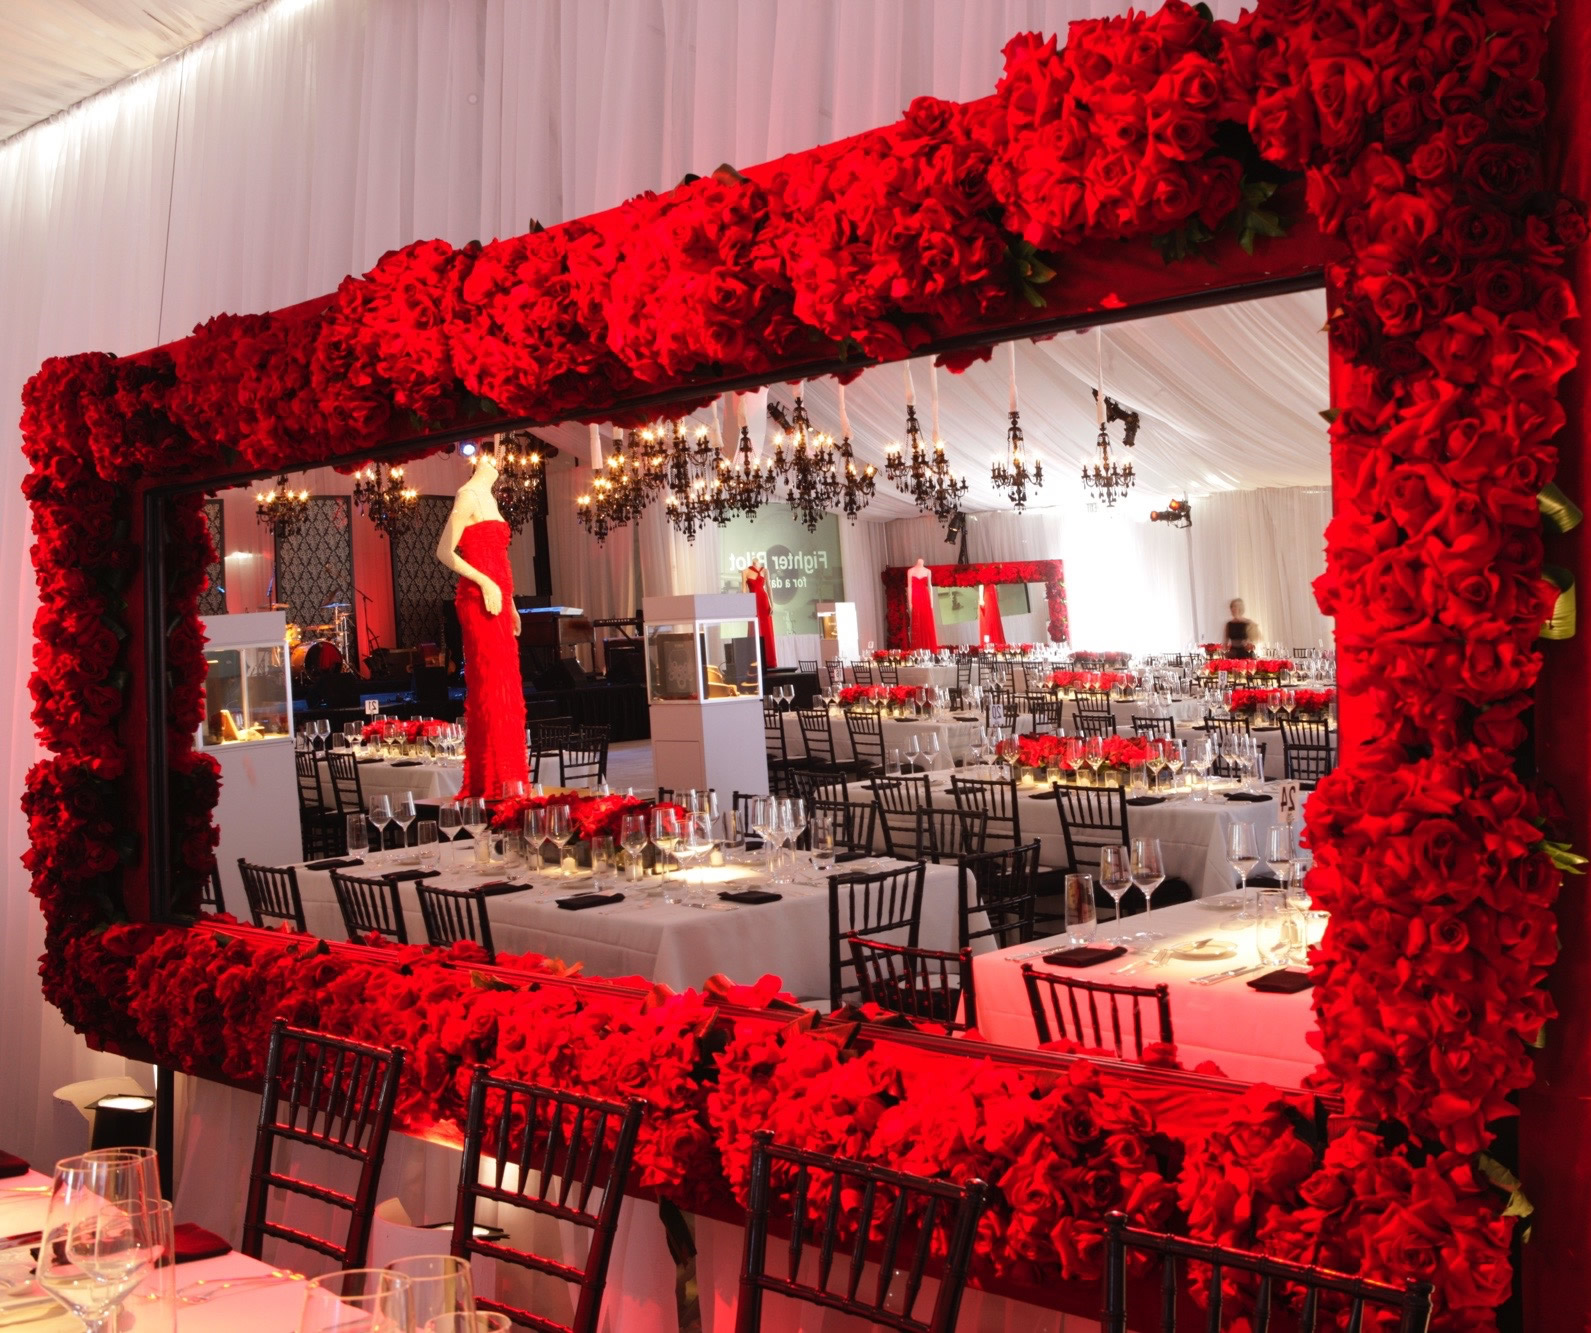 exhibition event management Valentino at Valenti International fundraiser event planning seating and mannequin with red evening dress rose arrangement around mirror